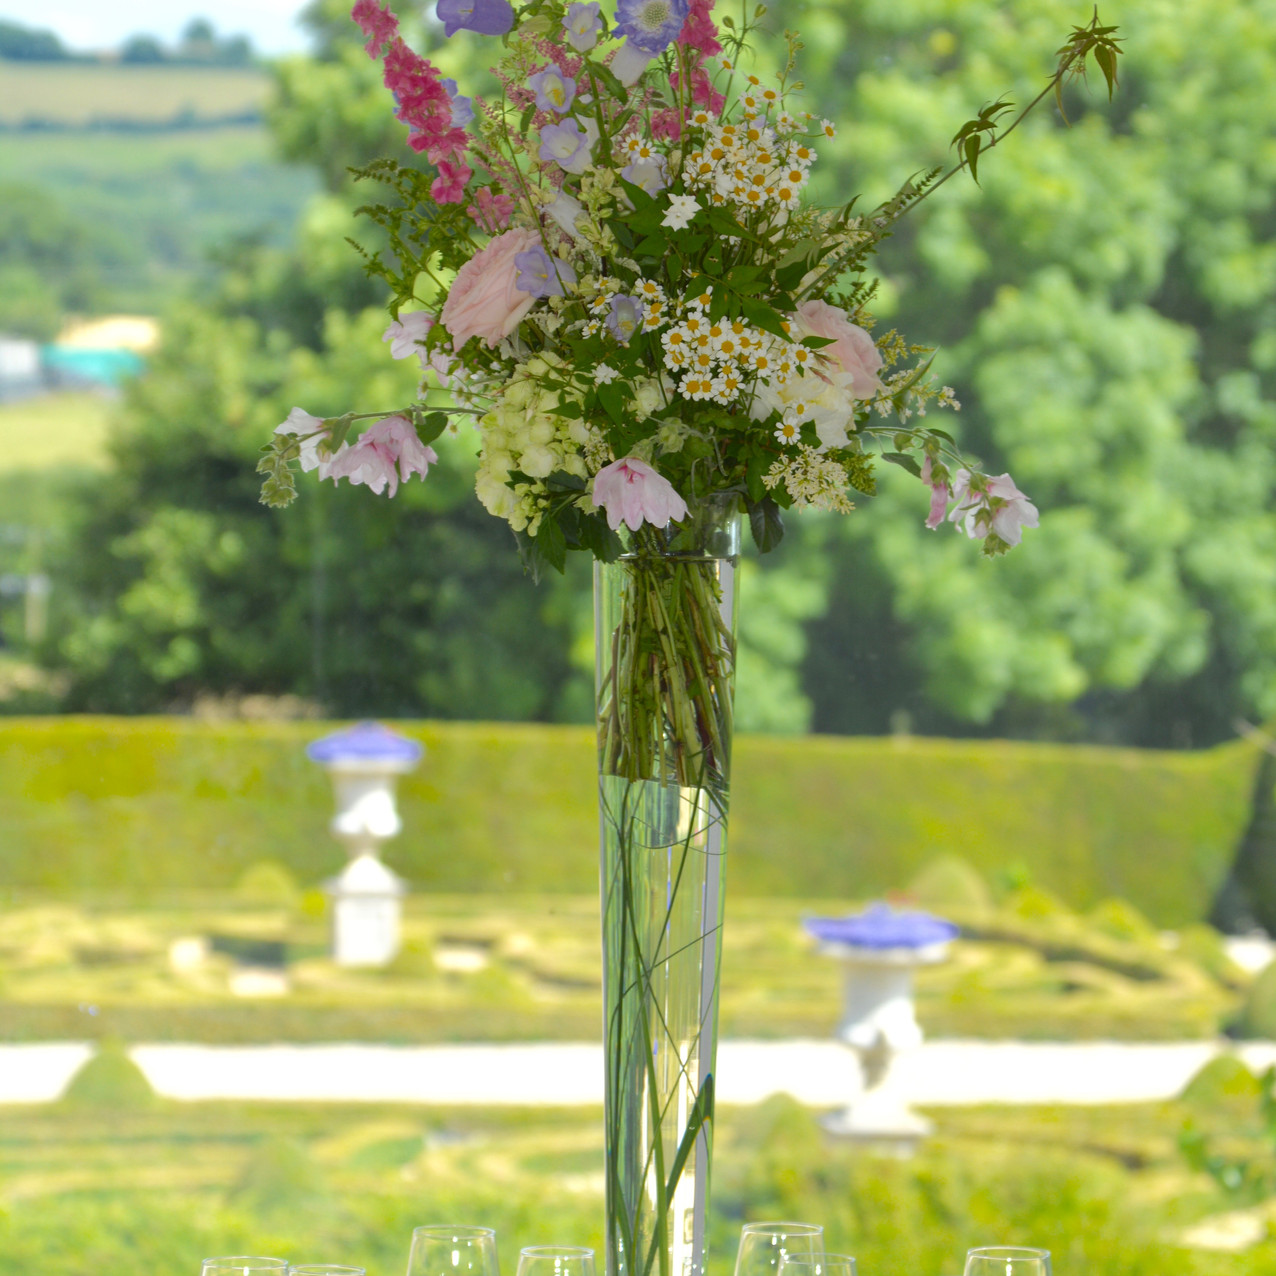 Tall conic vase with hand-tied arrangement of summer flowers